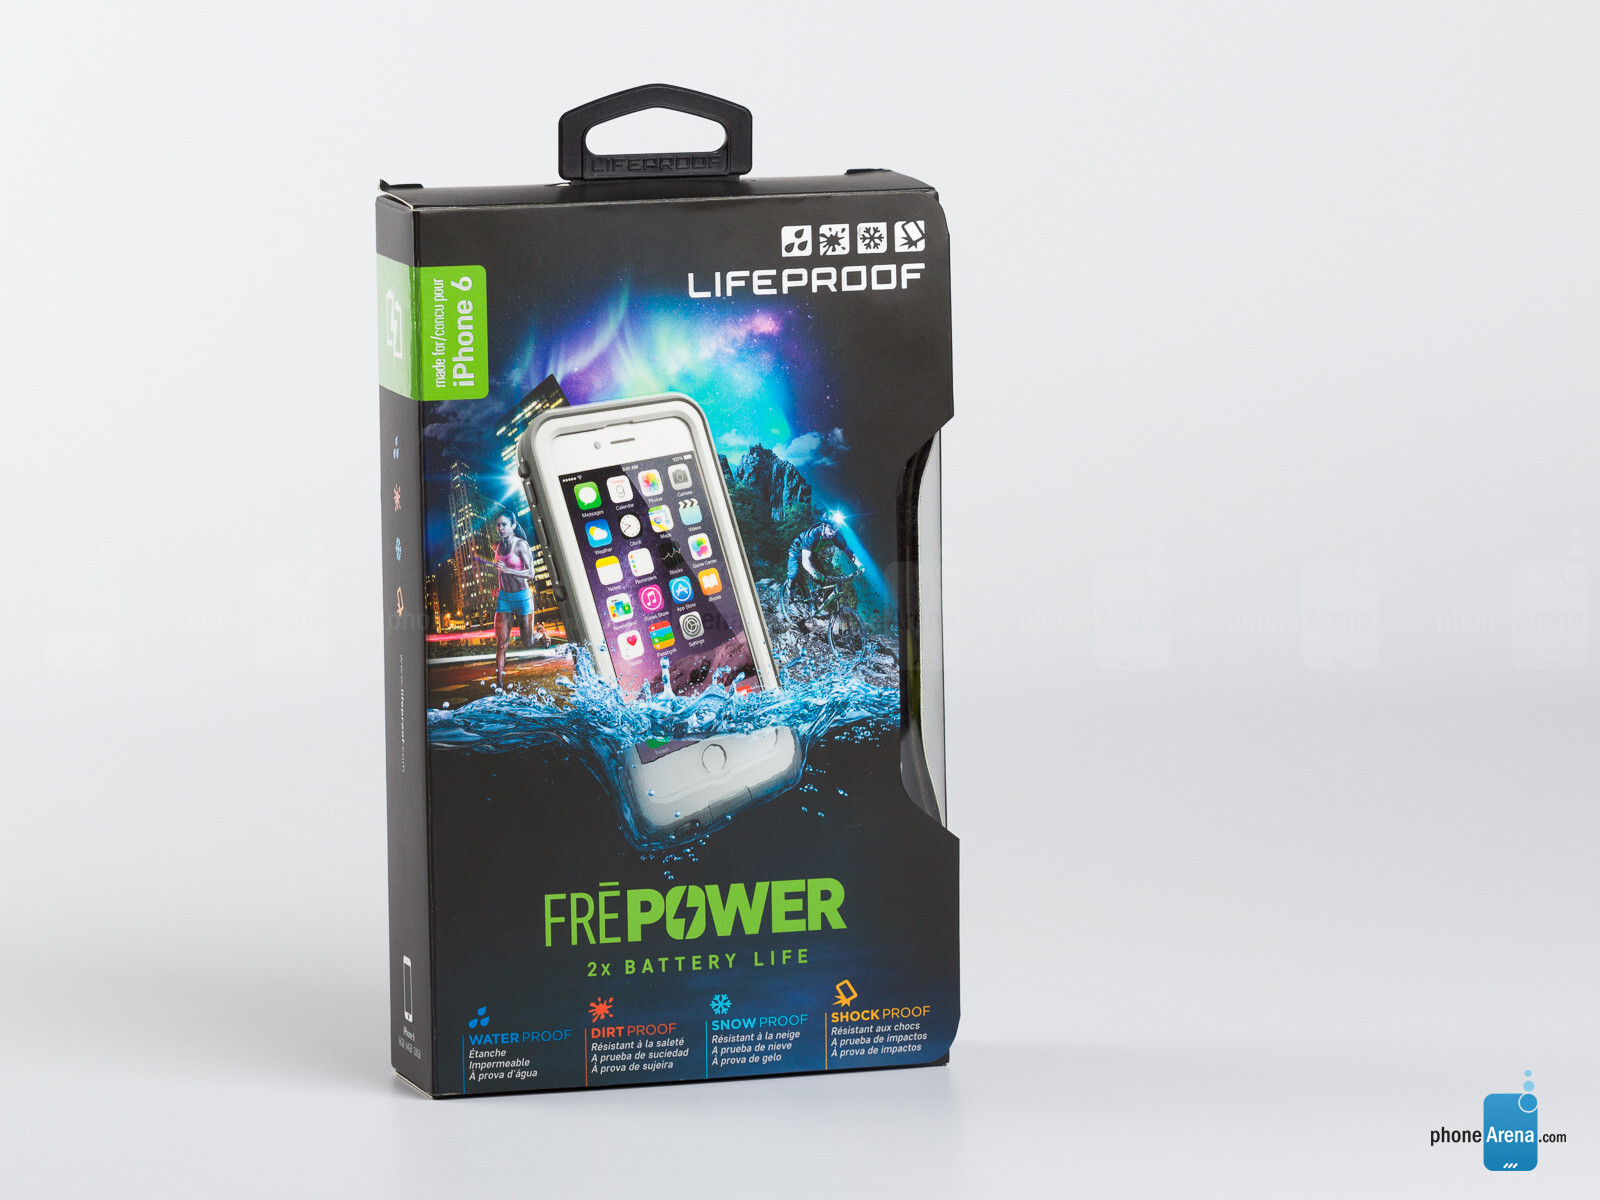 new products 7057d 152da Lifeproof Frē Power battery case for iPhone 6 review - PhoneArena